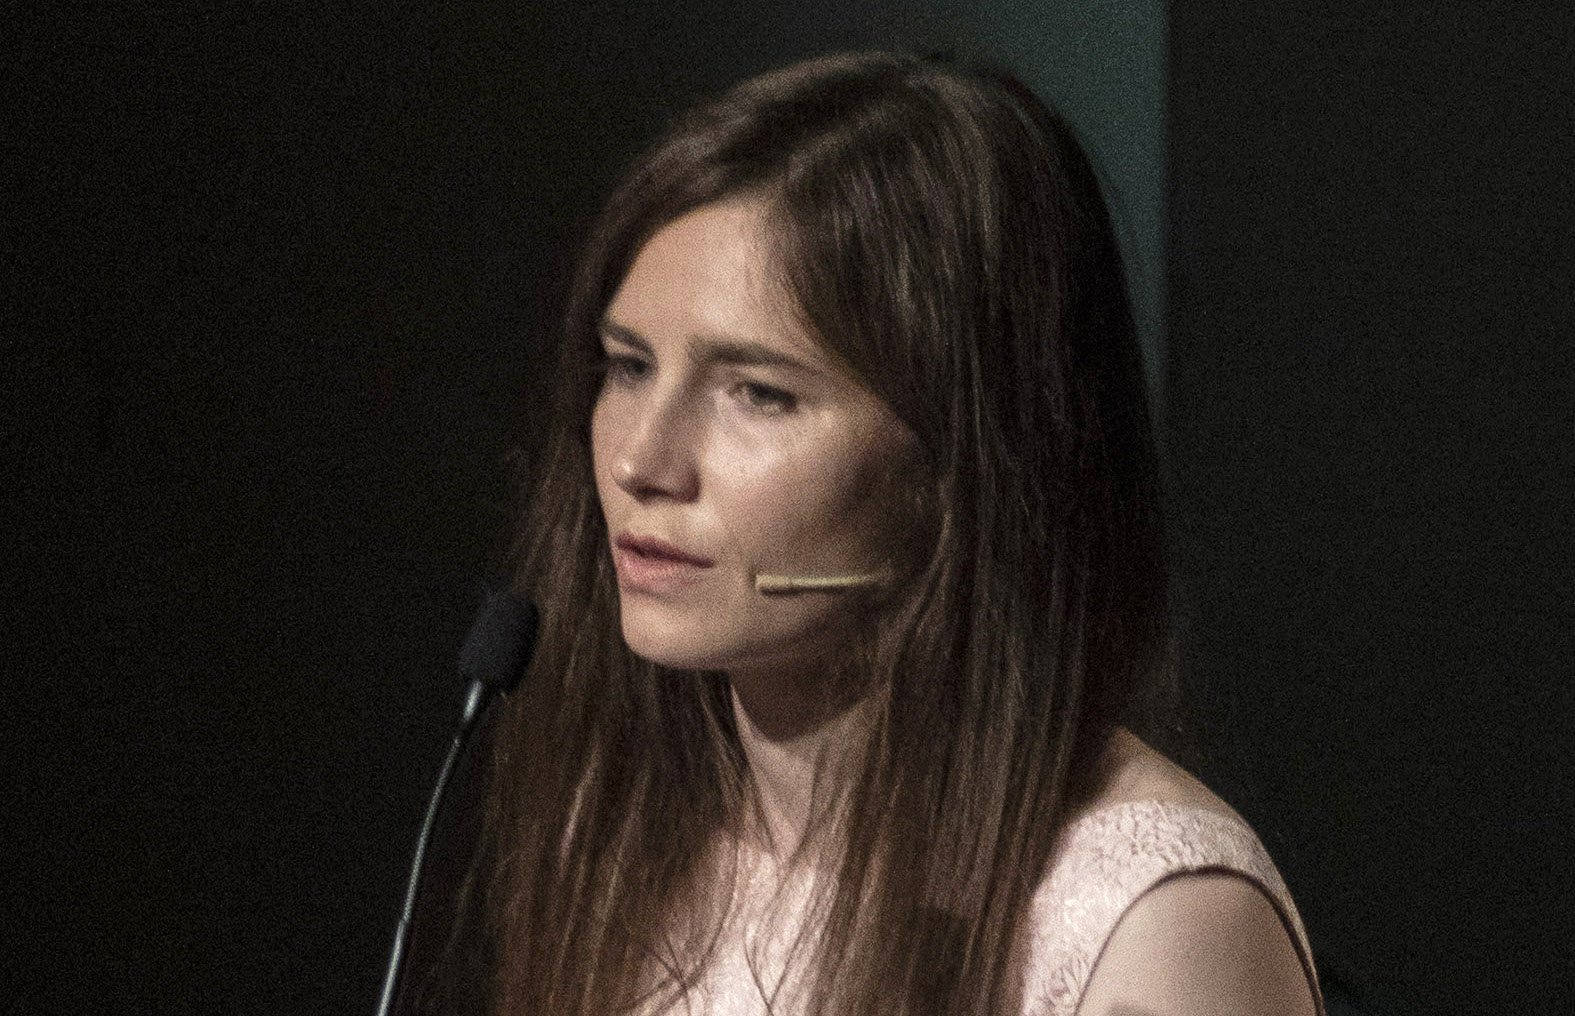 MODENA, ITALY - JUNE 15: American journalist Amanda Knox attends a panel session entitled Trial by Media during the first edition of the Criminal Justice Festival, an event organised by The Italy Innocence Project and the local association of barristers, on June 15, 2019 in Modena, Italy. The Italy Innocence Project focuses on the issues relating to wrongful convictions and miscarriages of justice in Italy. Guest speaker Amanda Knox makes her first visit back to Italy since she was wrongly convicted of murdering British student Meredith Kercher. Knox spent four years in prison following her conviction for the murder of her flatmate in 2007 and was definitively acquitted by the Italian Supreme Court of Cassation. (Photo by Emanuele Cremaschi/Getty Images)